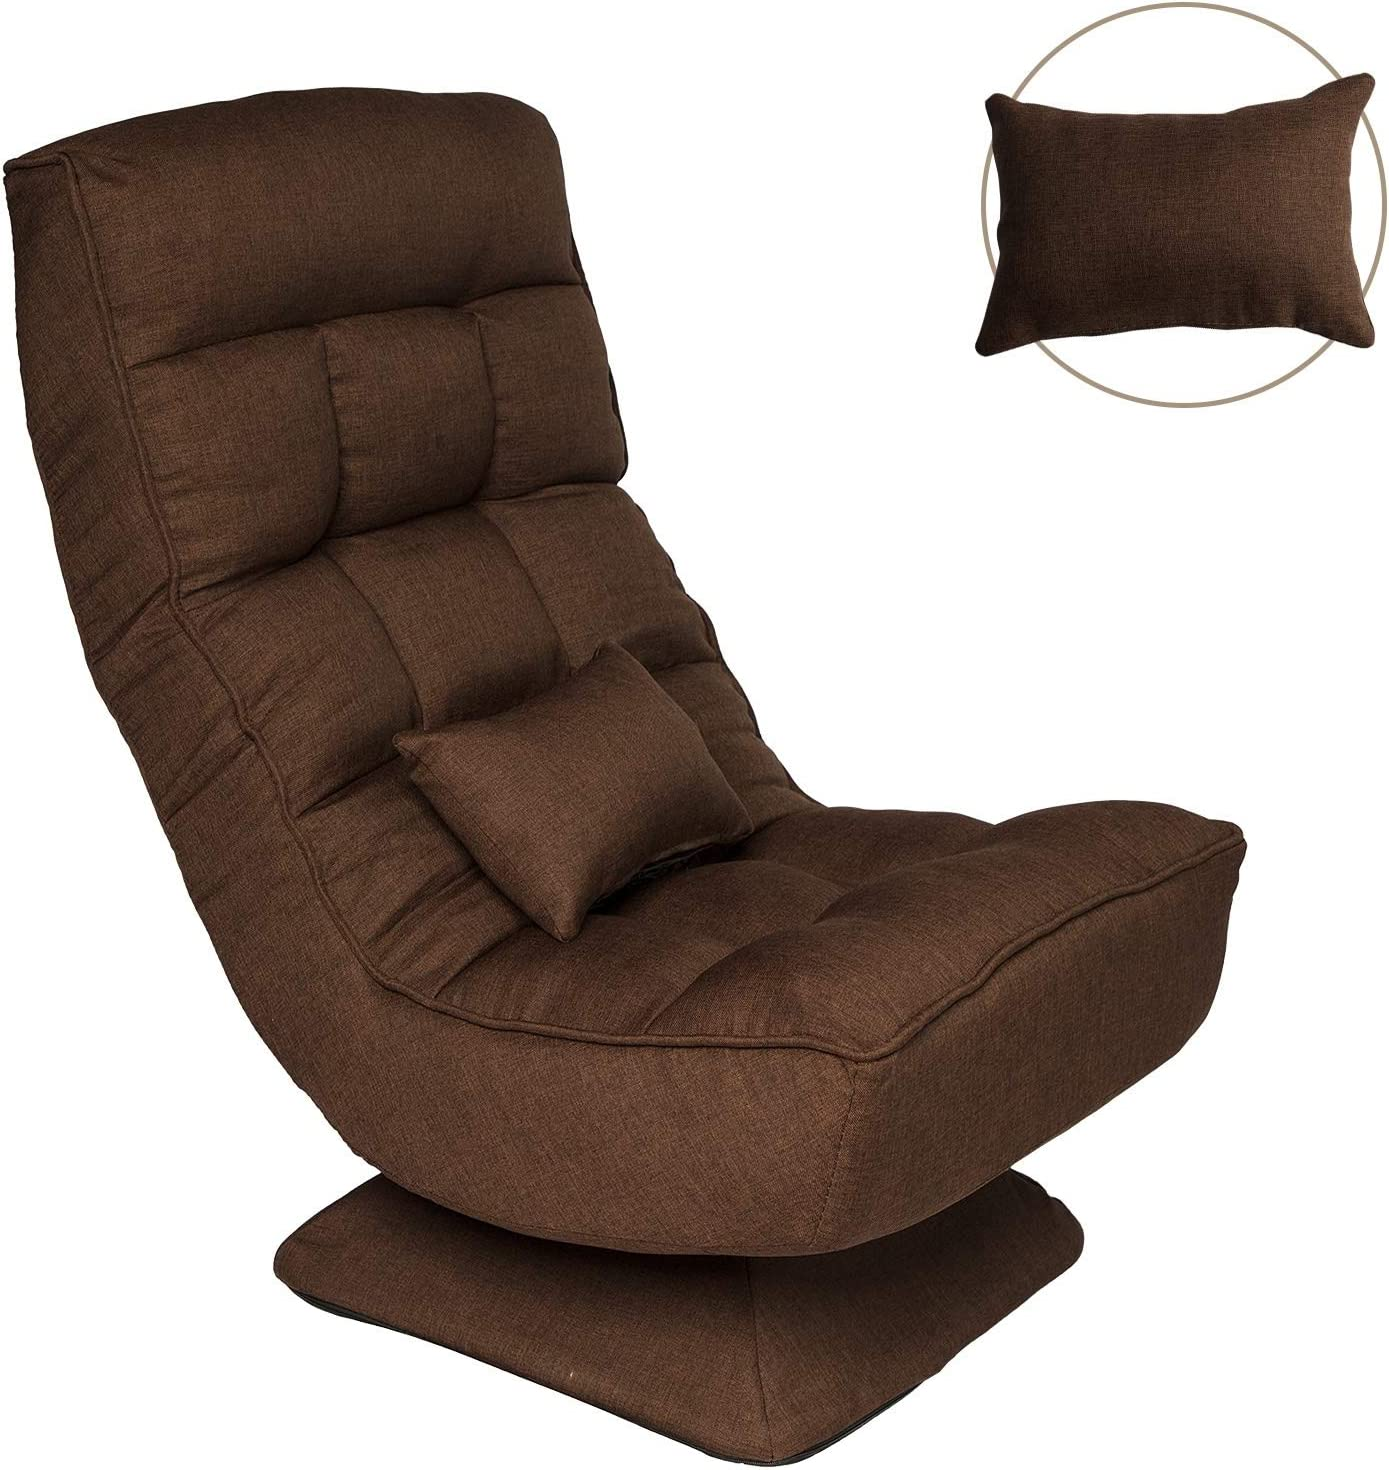 Folding Floor Gaming Chair For Home Office W Pillow 360 Degree Swivel Adjustable Video Game Chair Brown Kitchen Dining